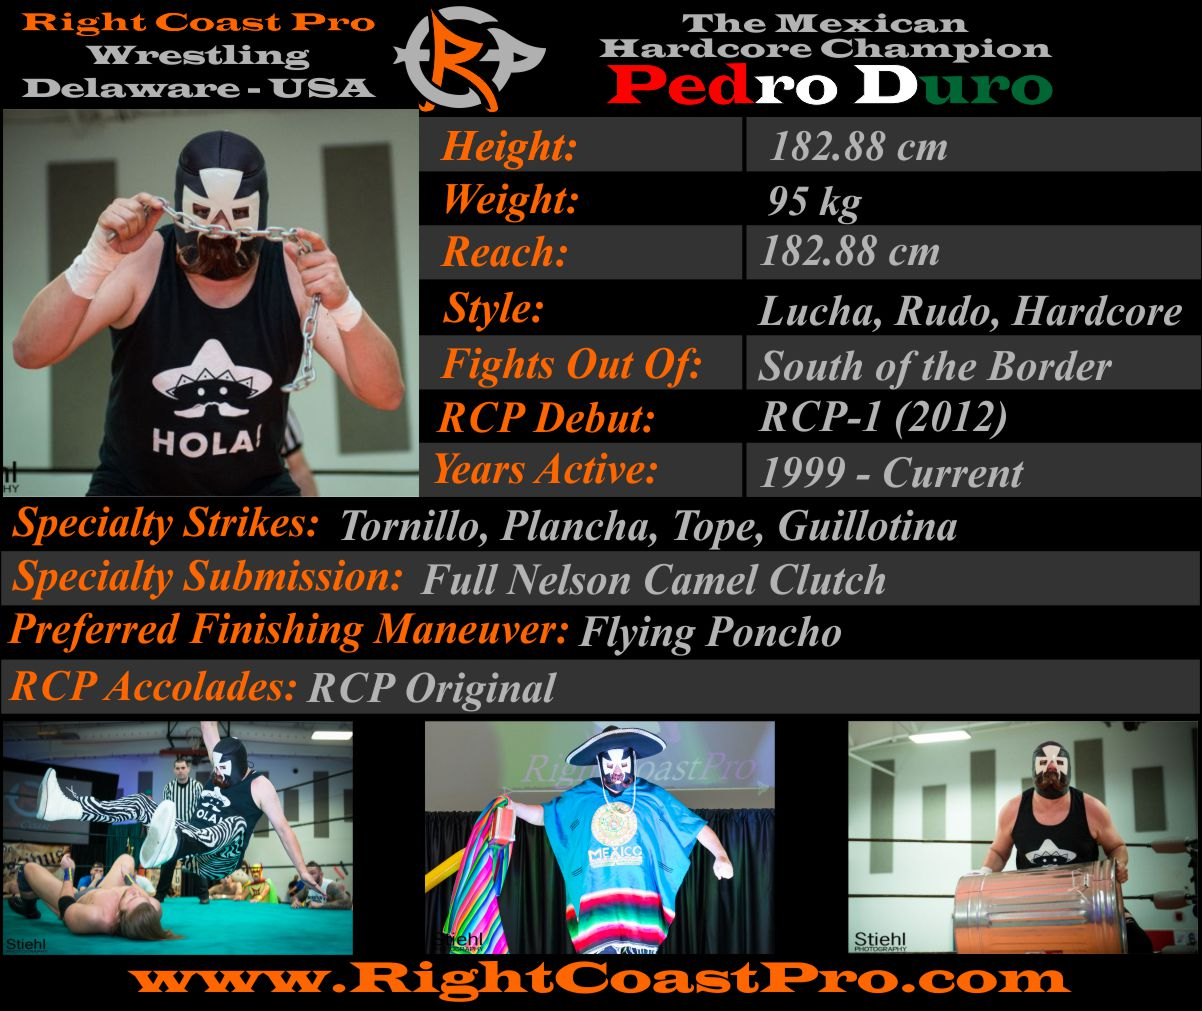 PedroDuro AthleteProfile RightCoastPro Wrestling Delaware